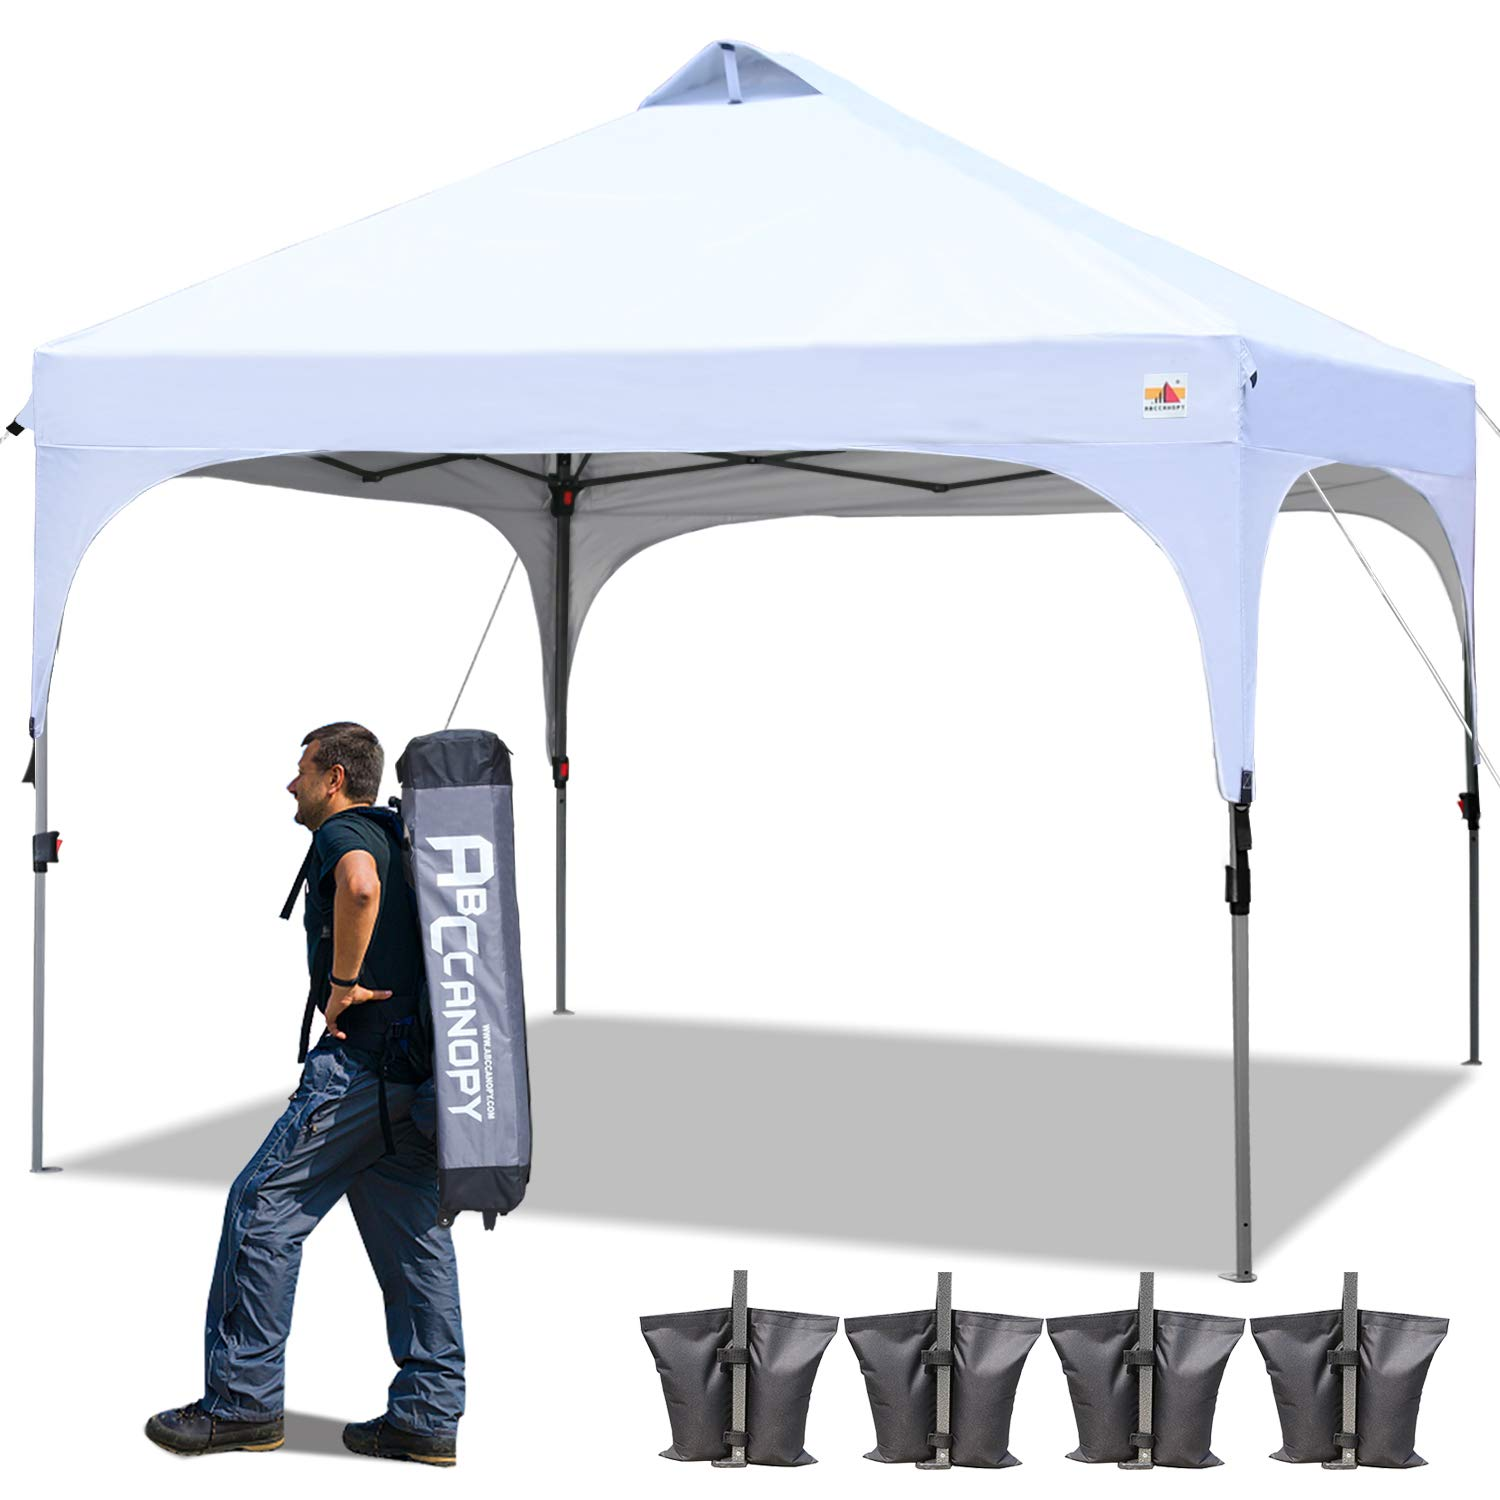 ABCCANOPY 10 x 10 Canopy Tent Pop-Up Commercial Instant Shelter Portable Shade Canopy Popup Tents Outdoor with Wheeled Carry Bag Bonus 4 Weight Bags, 4 x Ropes& 4 x Stakes, White